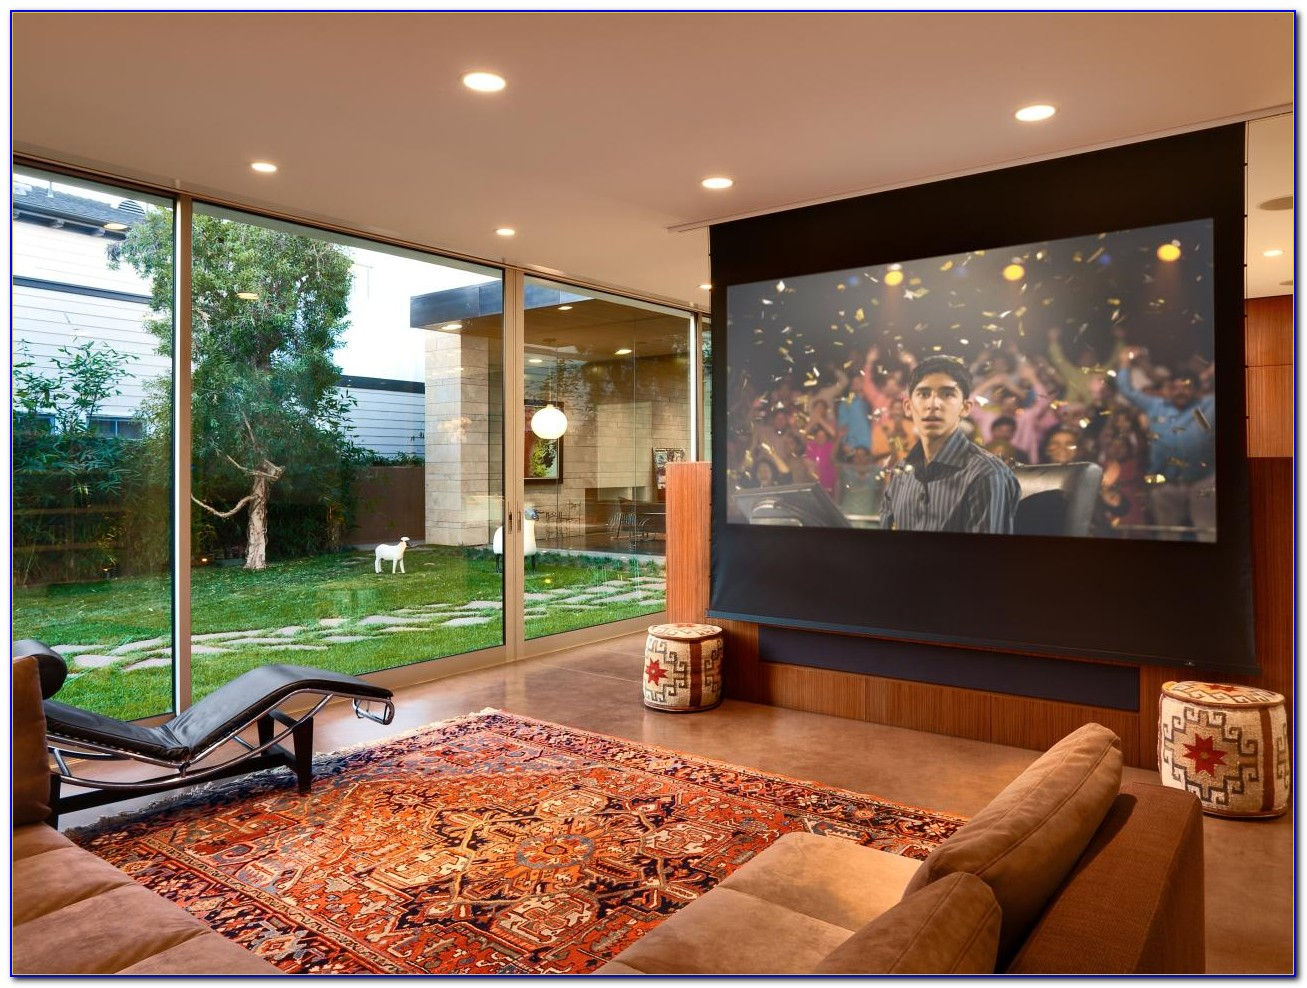 Install Projector Screen In Drop Ceiling